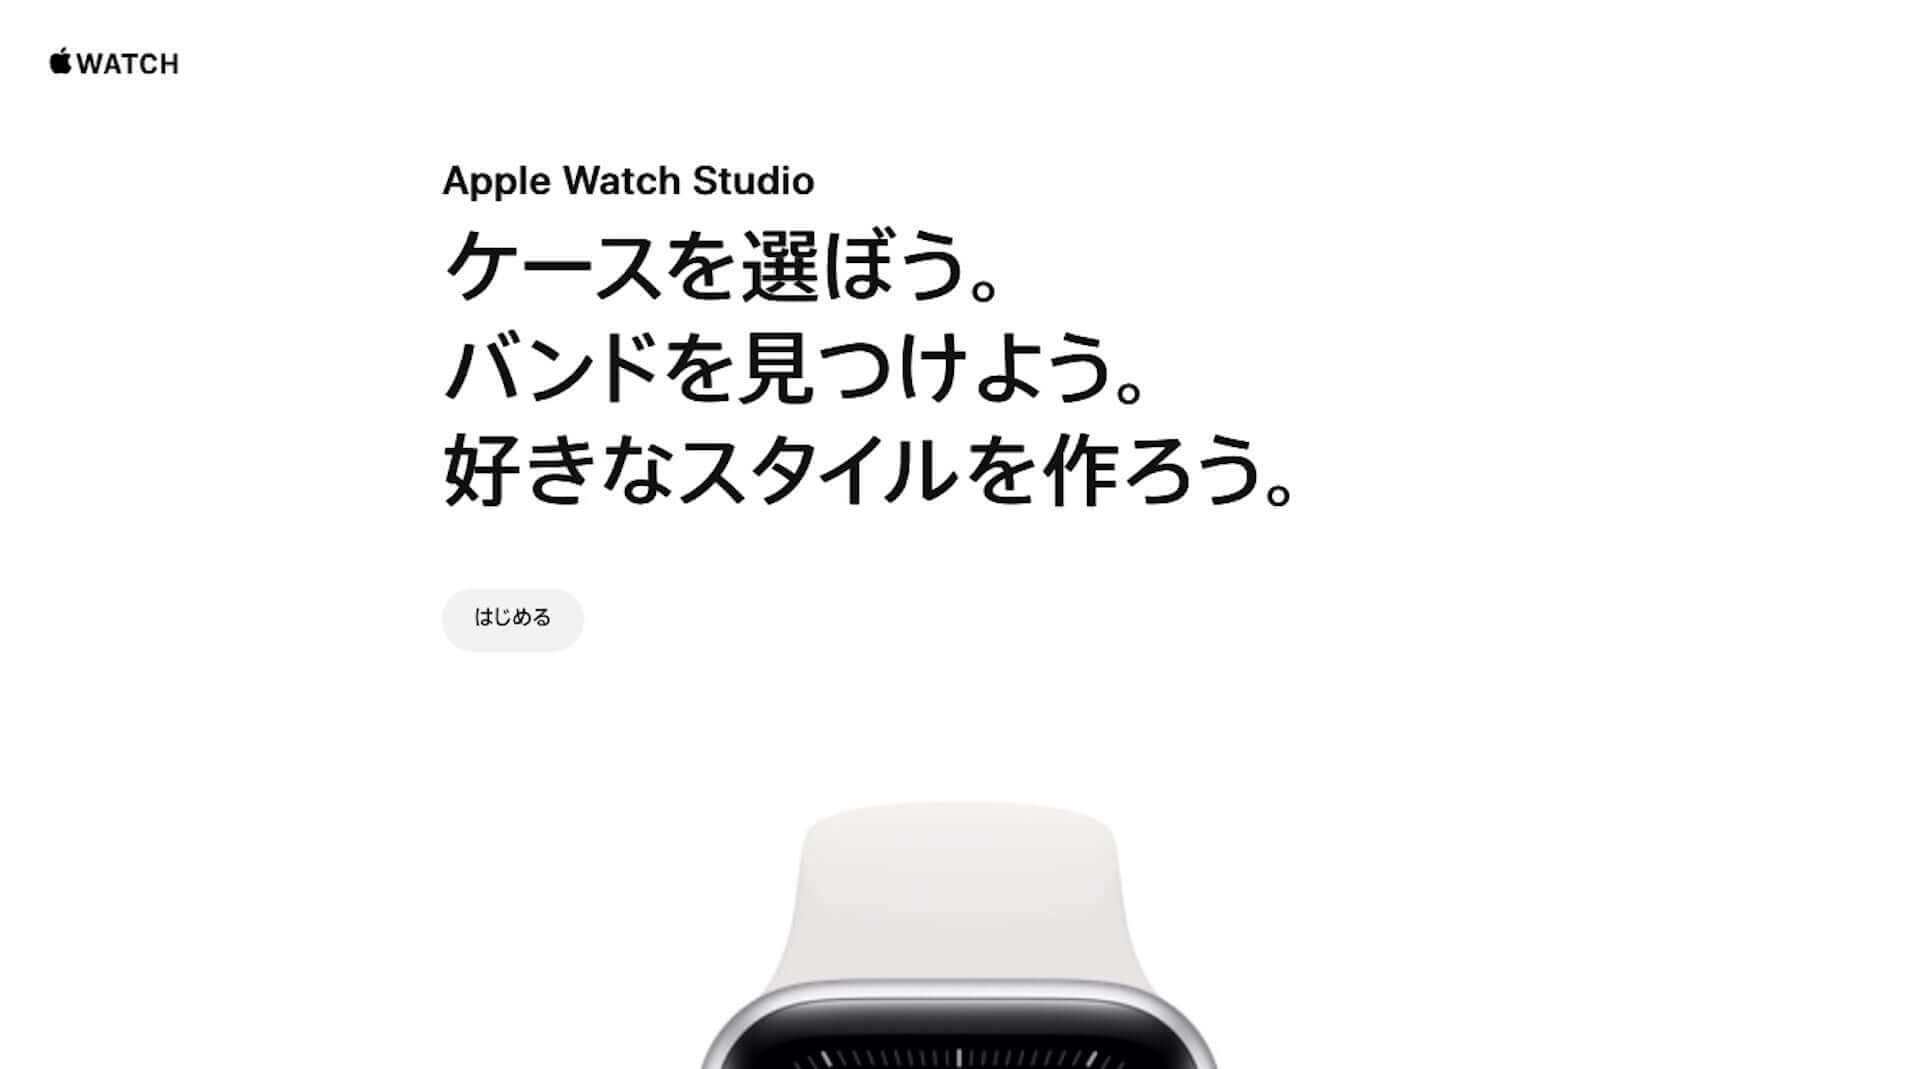 あなた好みのApple Watchを探そう!Apple Watch Studioが開設 tech190911_applewatch_studio_2-1920x1069